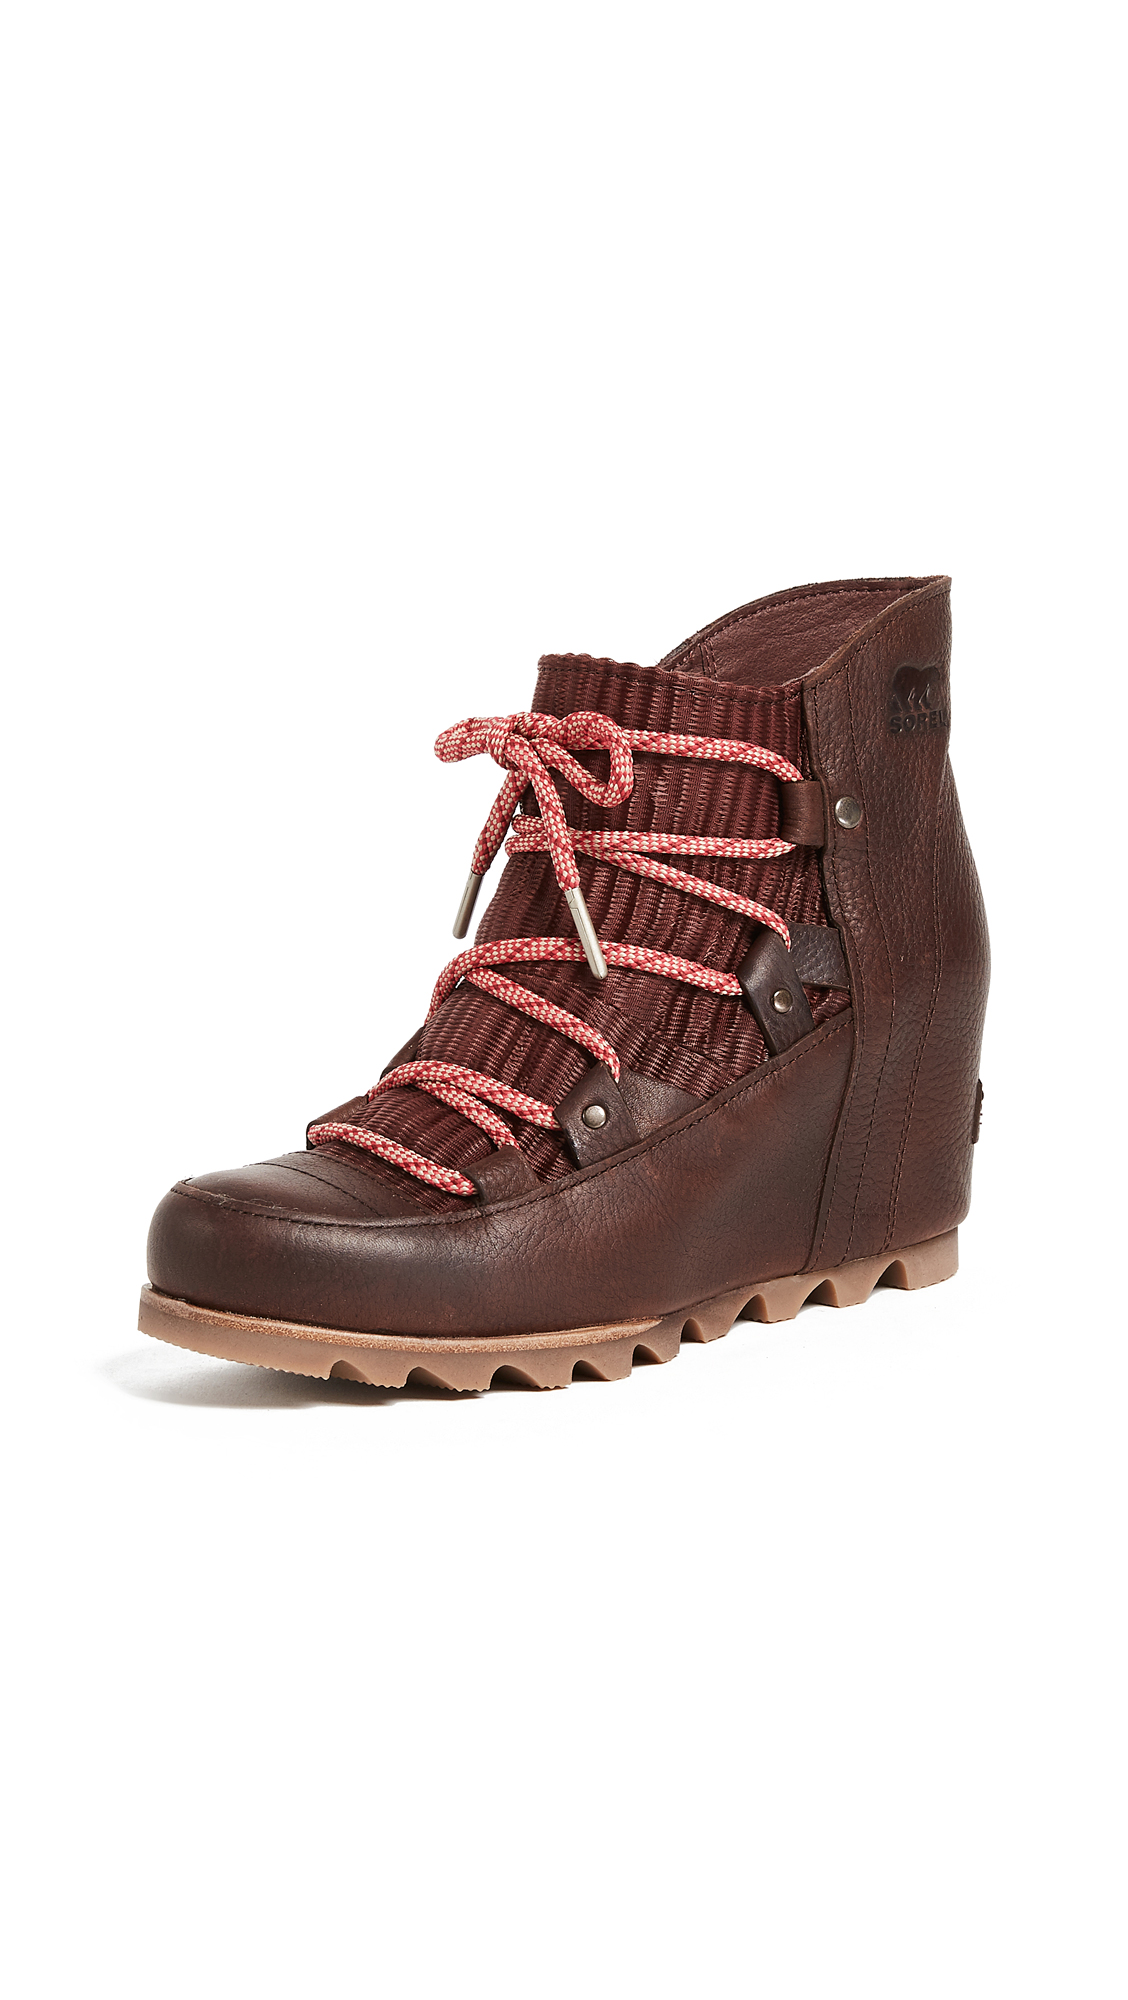 Sorel Sandy Wedge Booties - Redwood